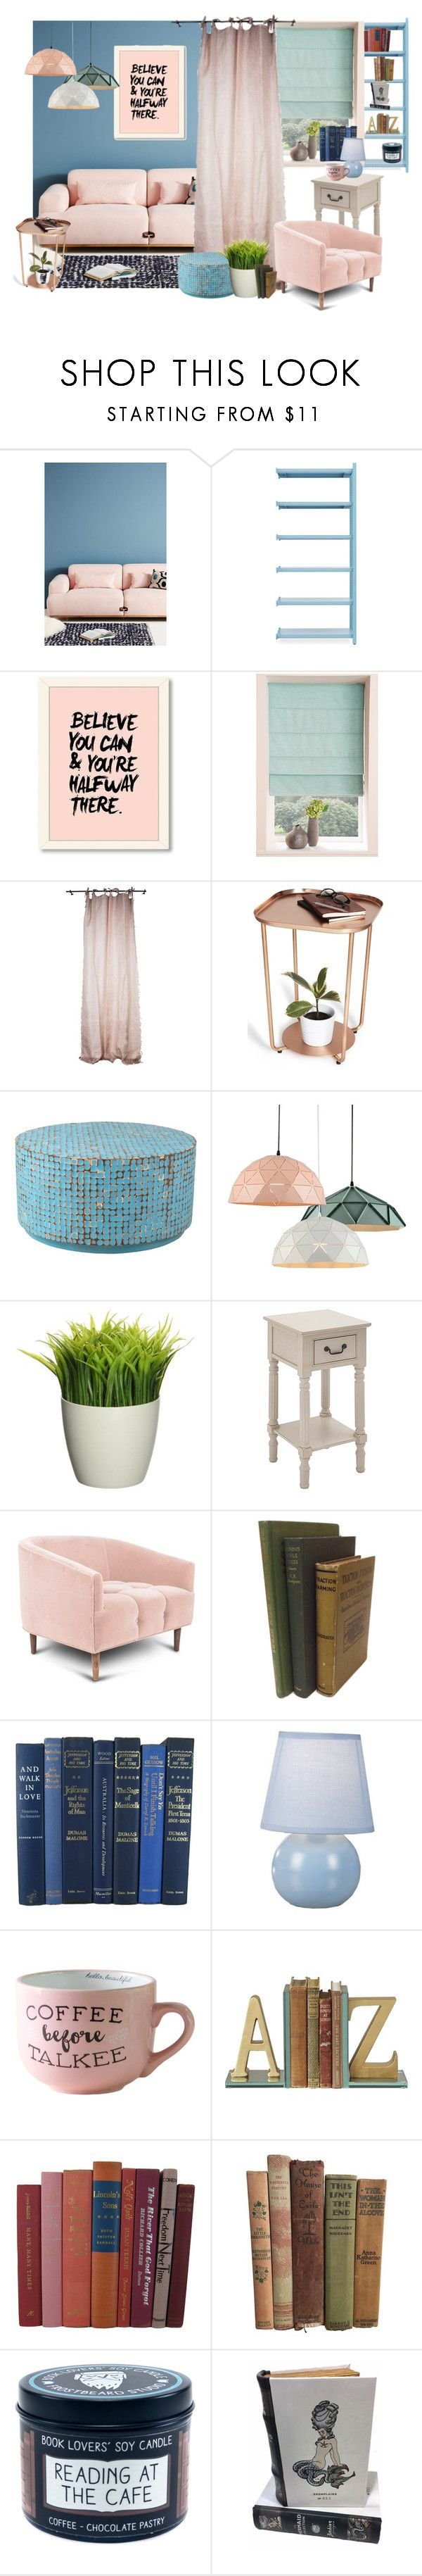 """Fluffy Retro"" by iris234 on Polyvore featuring interior, interiors, interior design, home, home decor, interior decorating, Bosc, Normann Copenhagen, Sagebrook Home and East at Main"